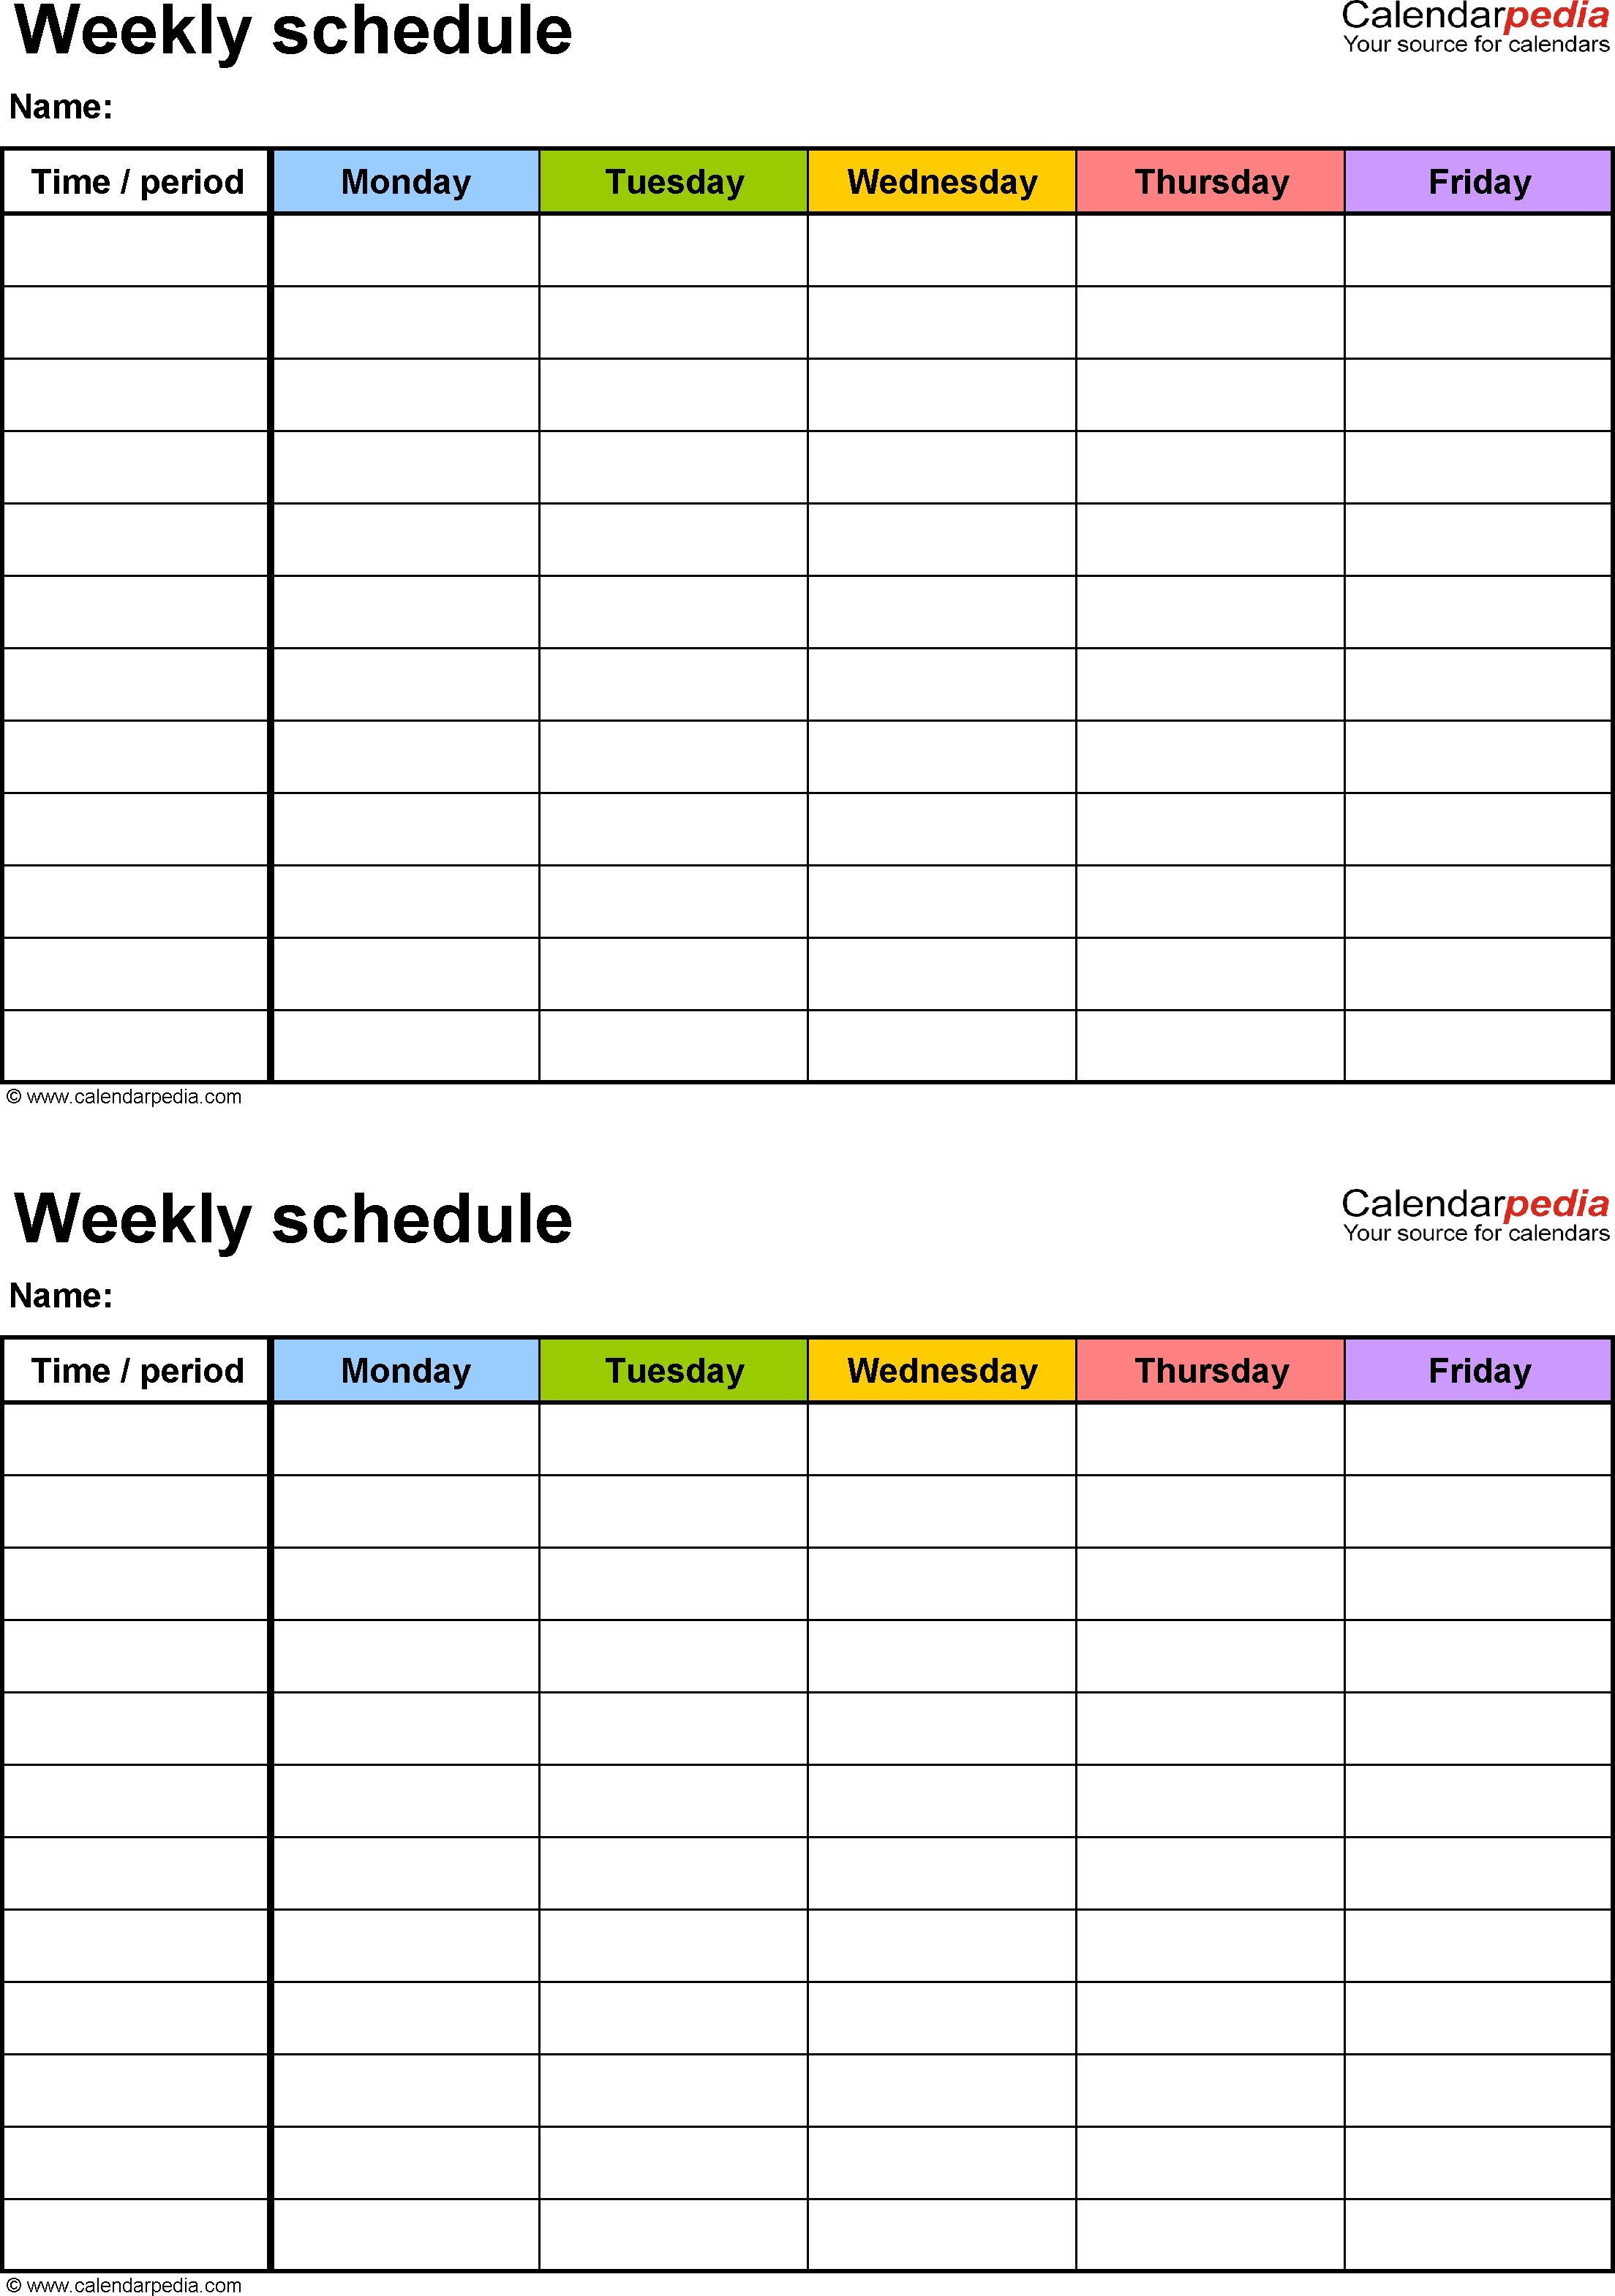 Free Weekly Schedule Templates For Pdf - 18 Templates throughout Printable Appointment Calendars Monday Through Friday